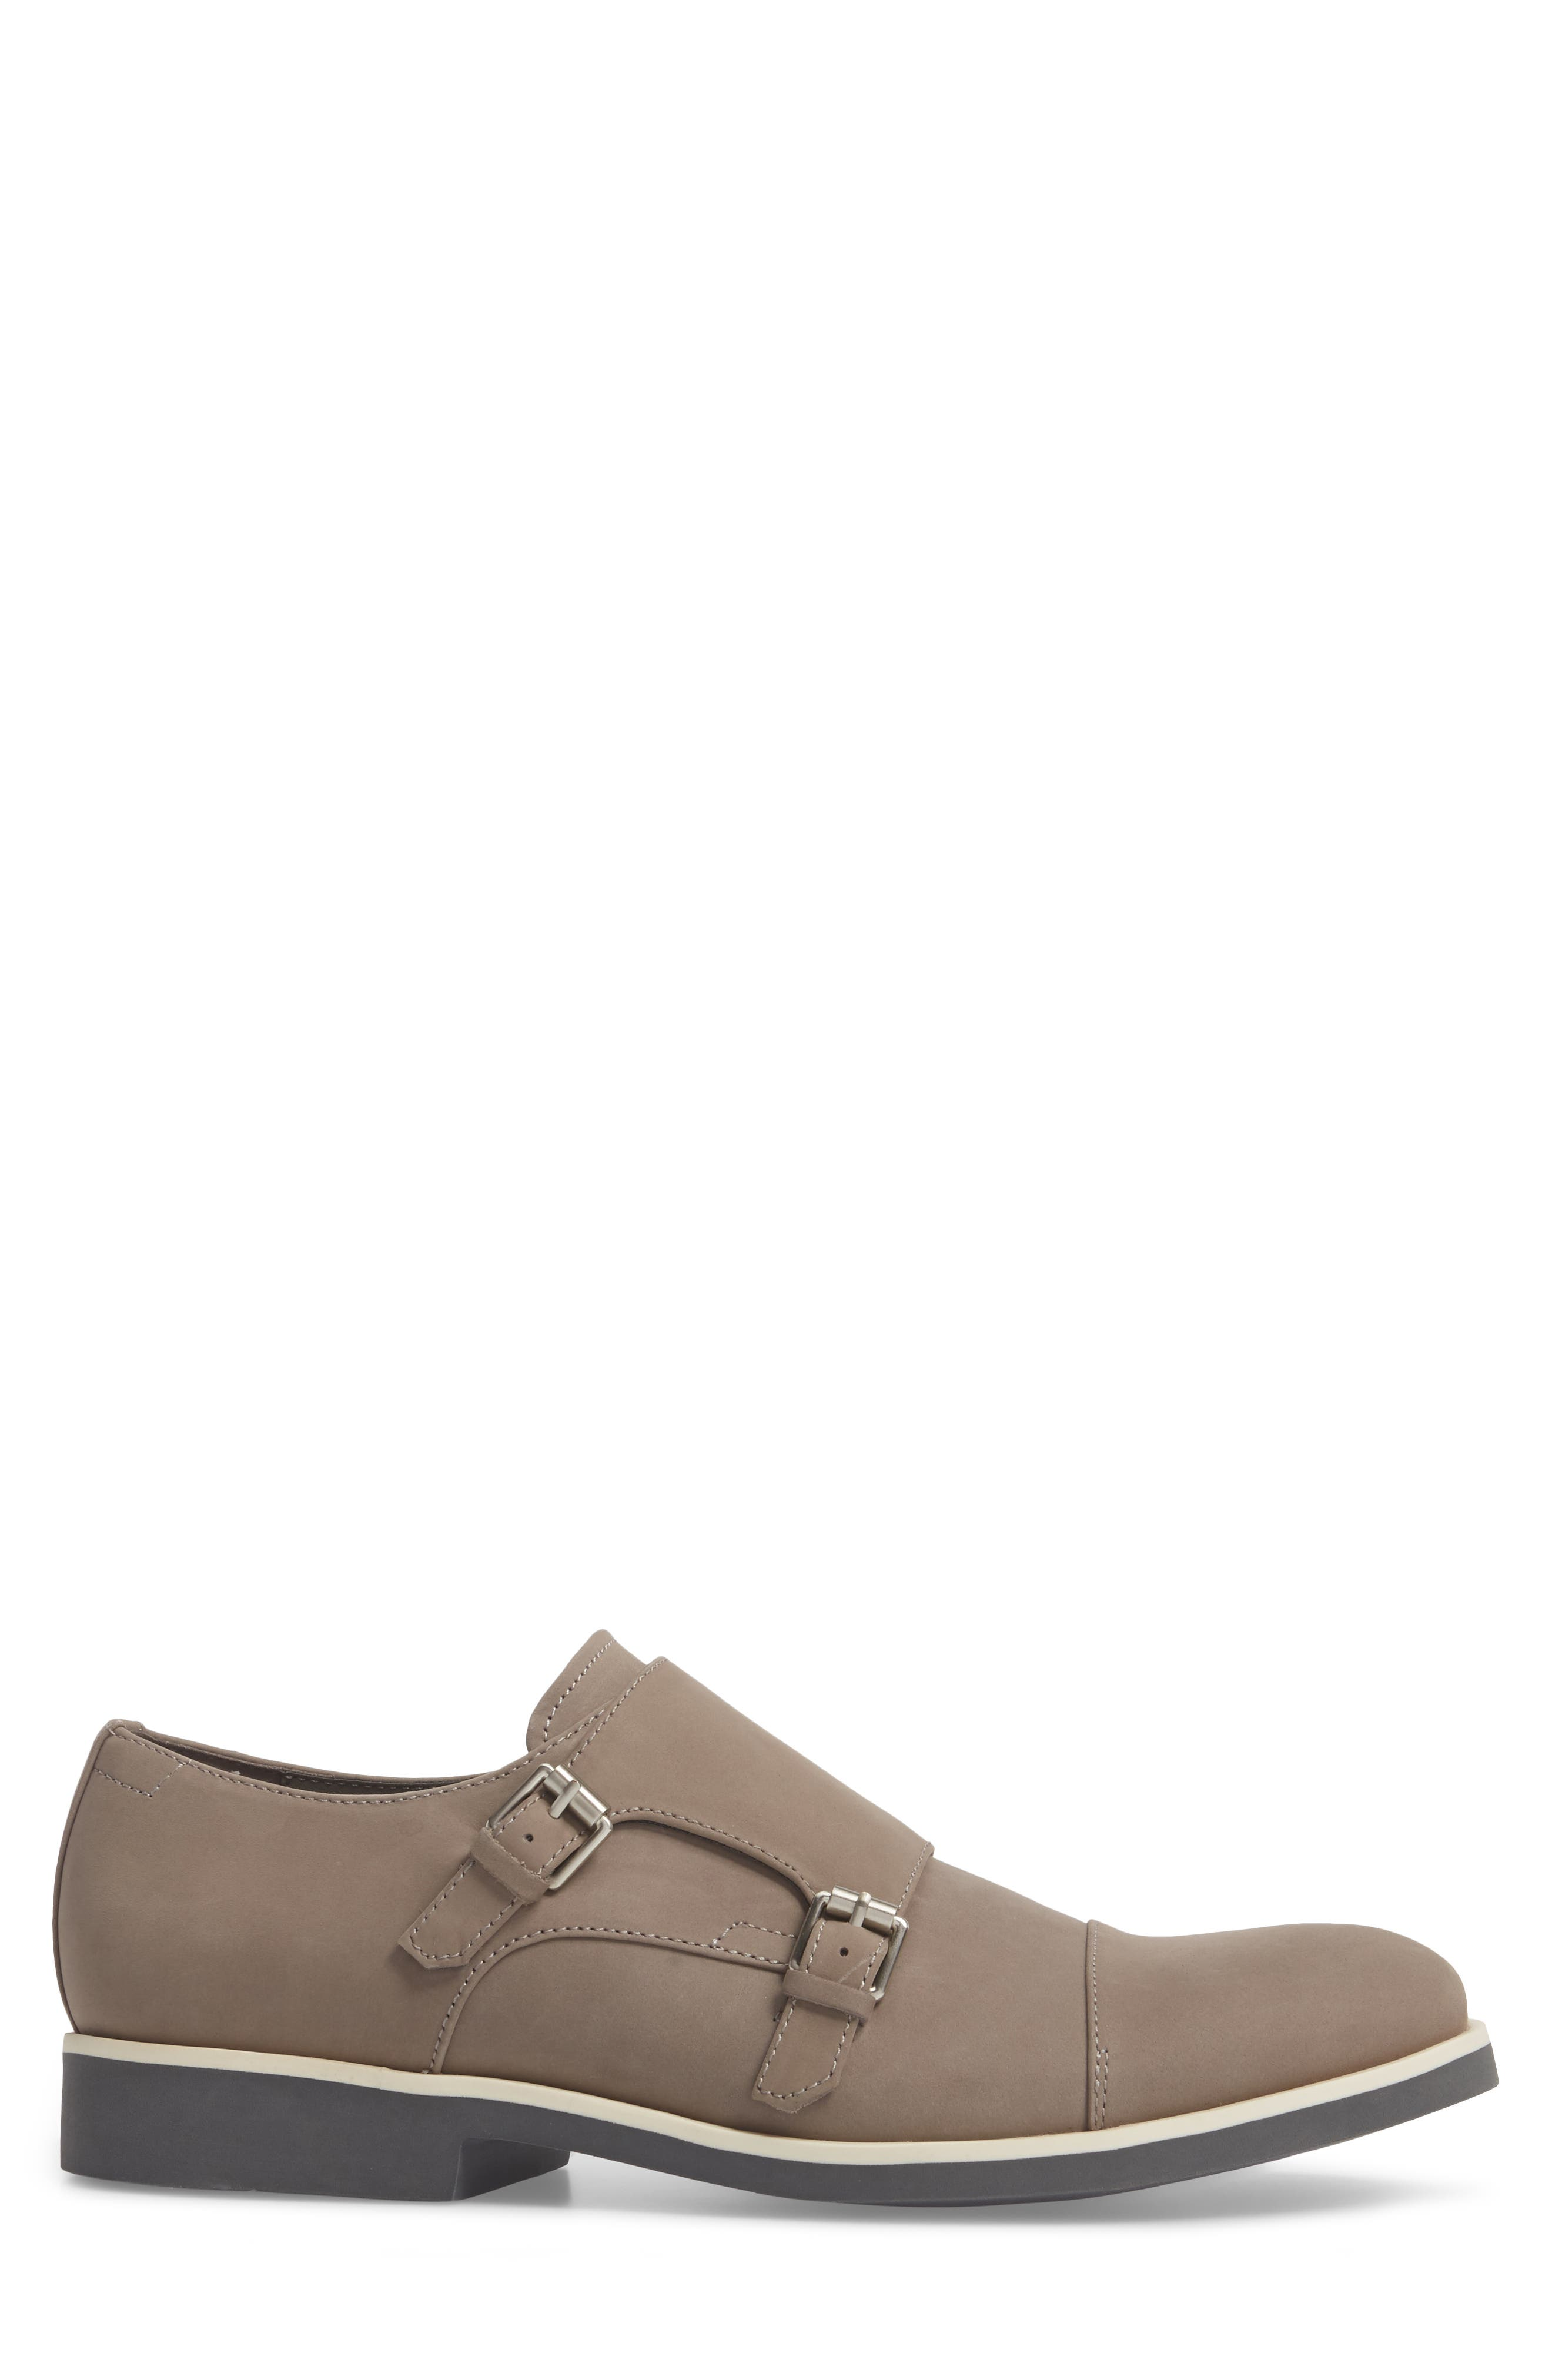 Finch Double Monk Strap Shoe,                             Alternate thumbnail 3, color,                             Toffee Leather